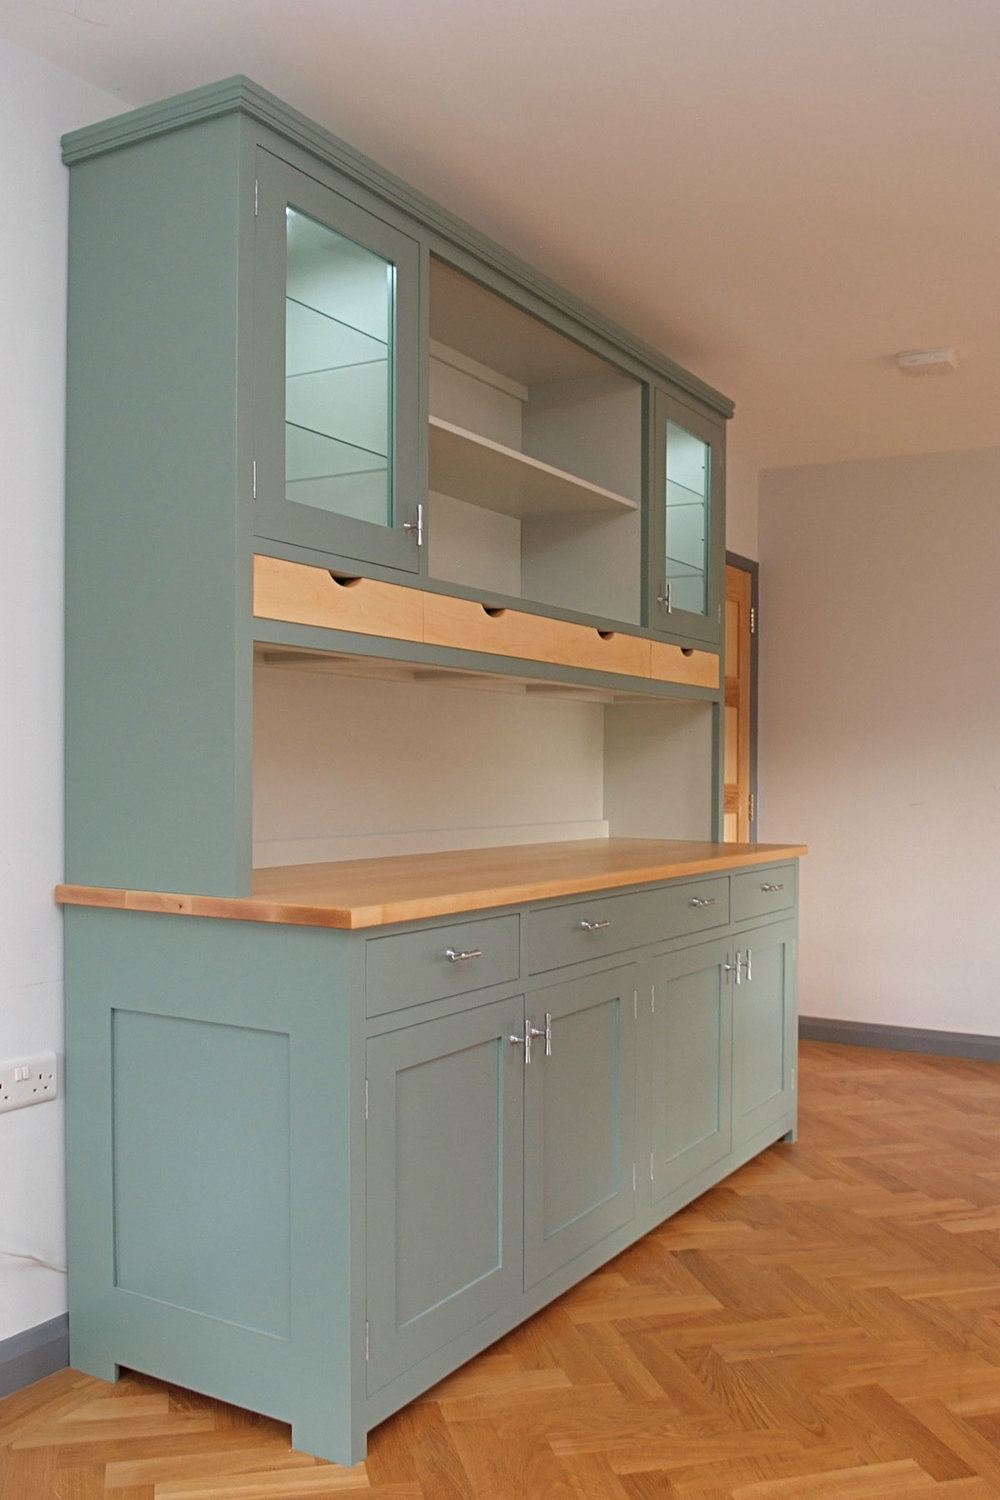 eddie-buckpitt-furniture-painted-and-glass-kitchen-dresser-13.jpg